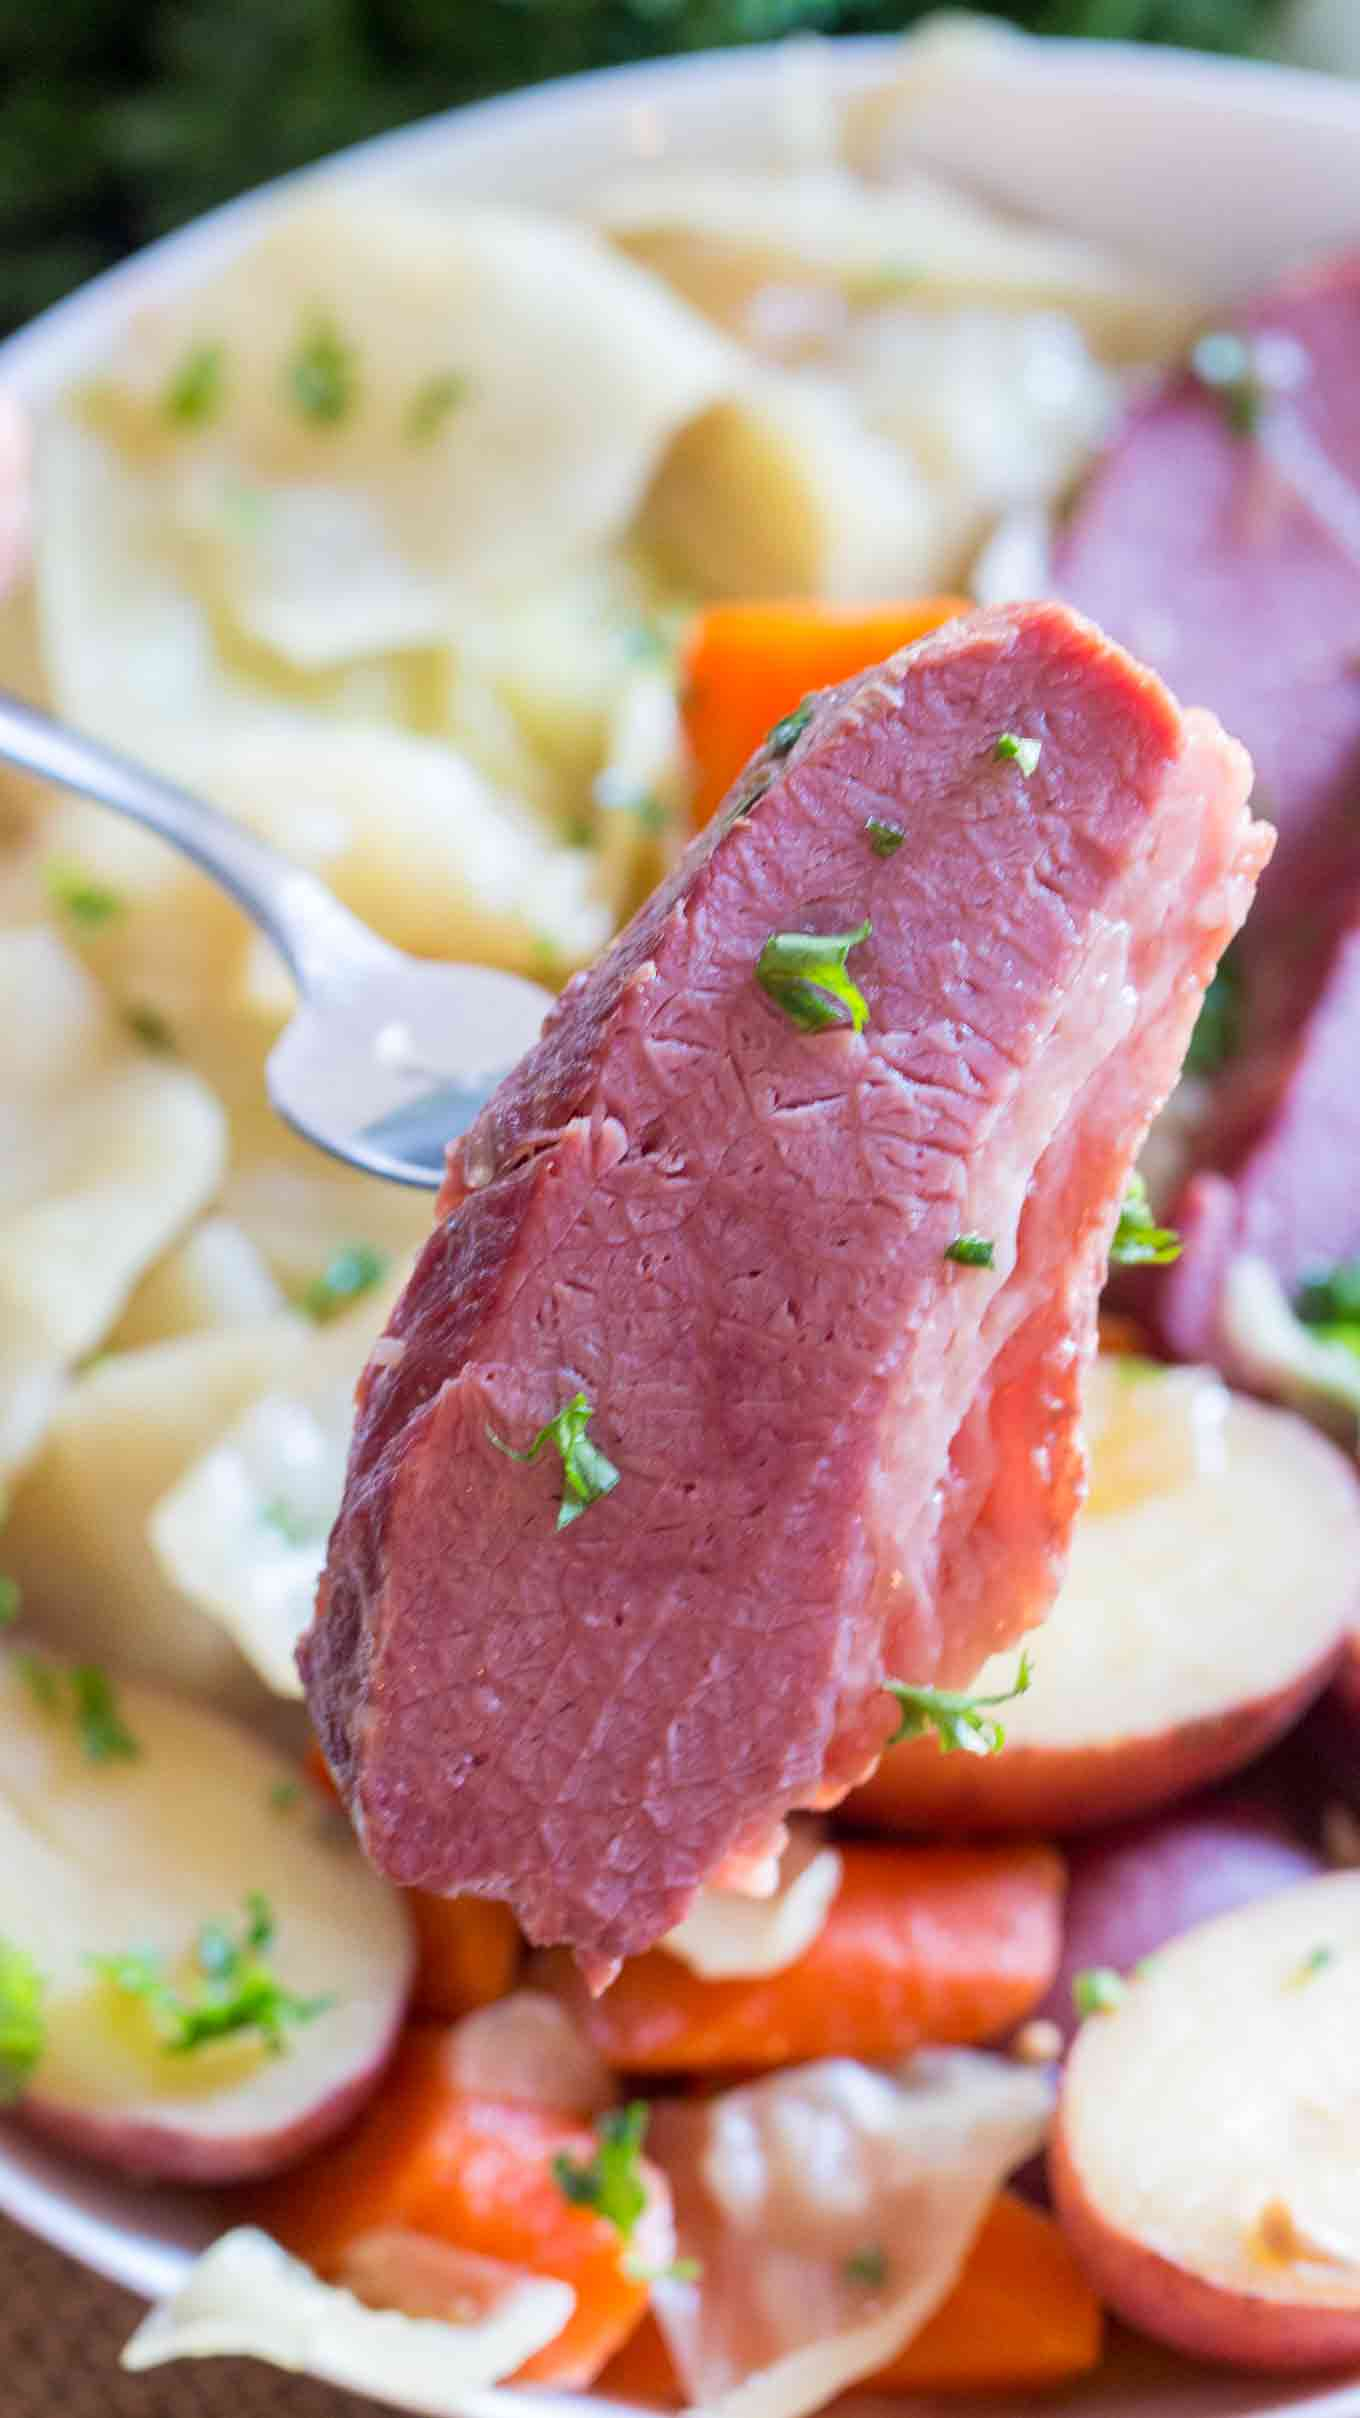 Instant Pot Corned Beef or Pressure Cooker Corned Beef